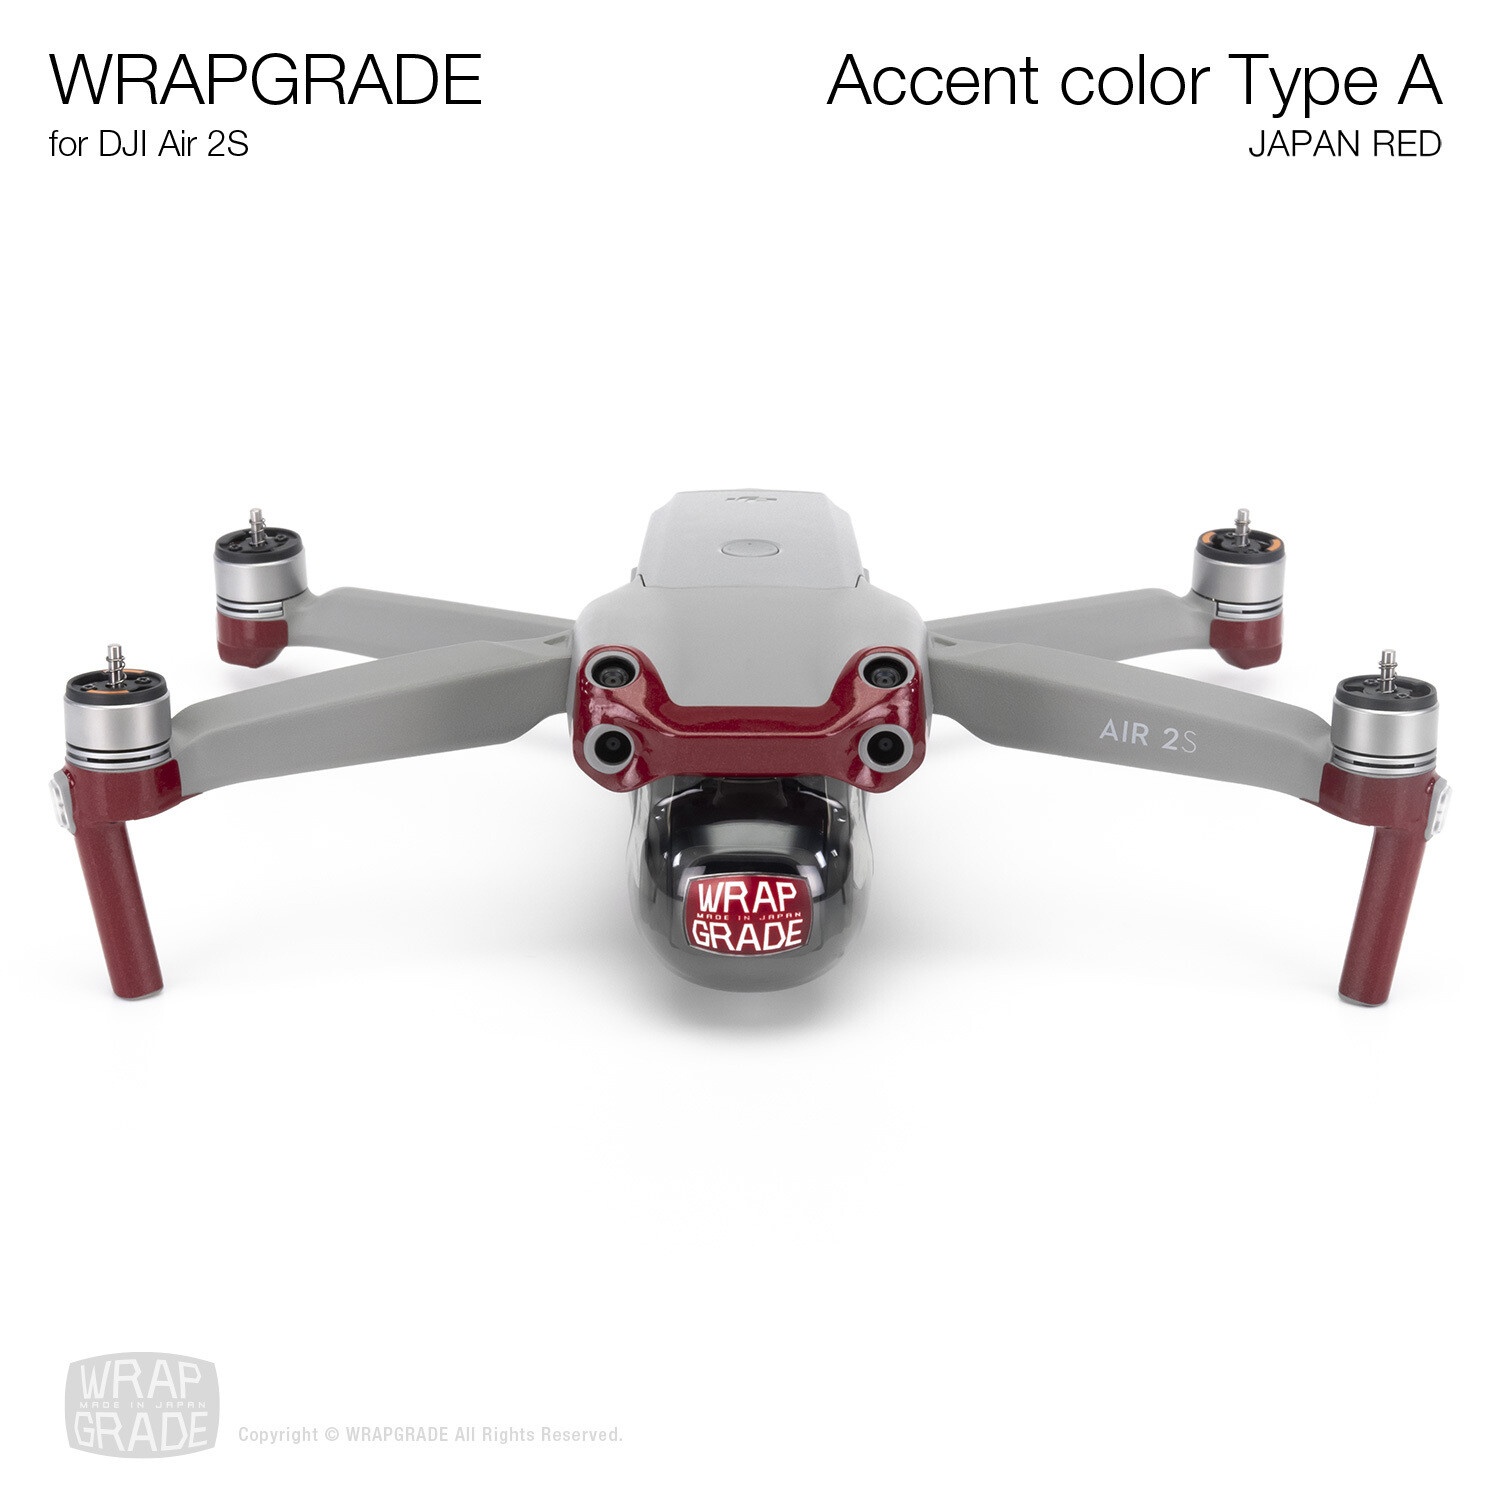 Wrapgrade Skin for DJI Air 2S | Accent Color A (JAPAN RED)